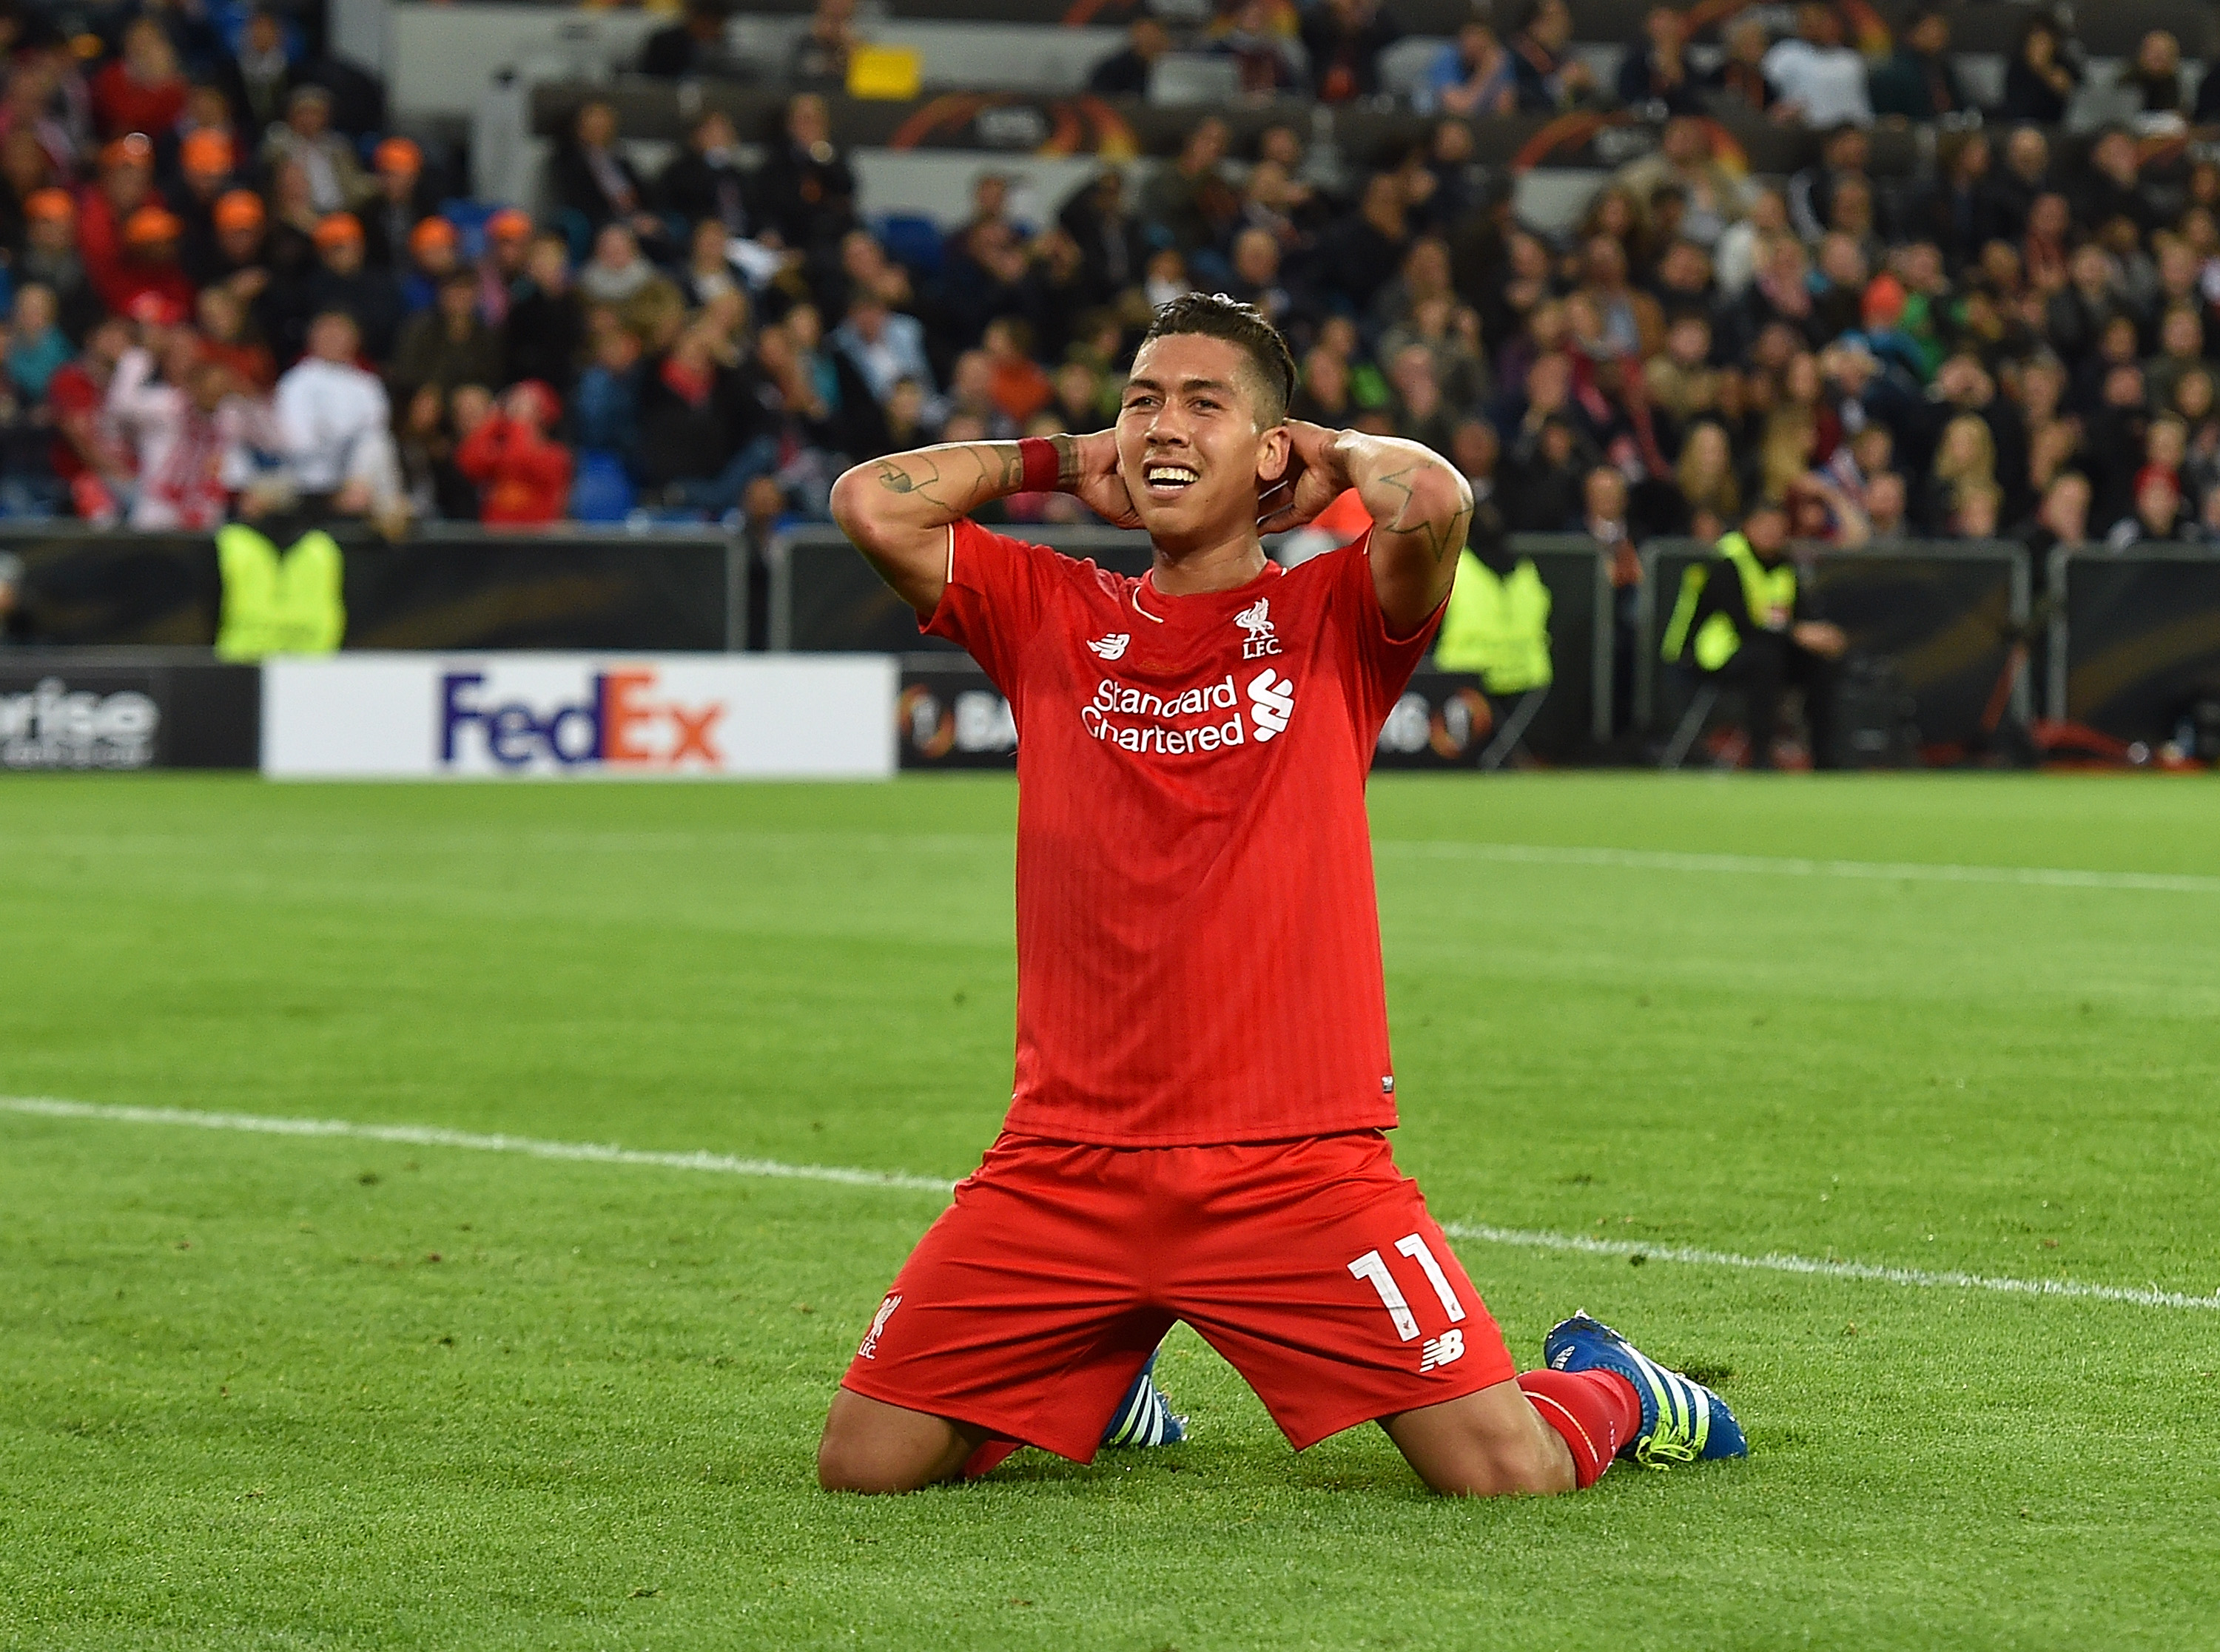 5 things we learned from Liverpool's 3-1 Europa League final defeat to Sevilla